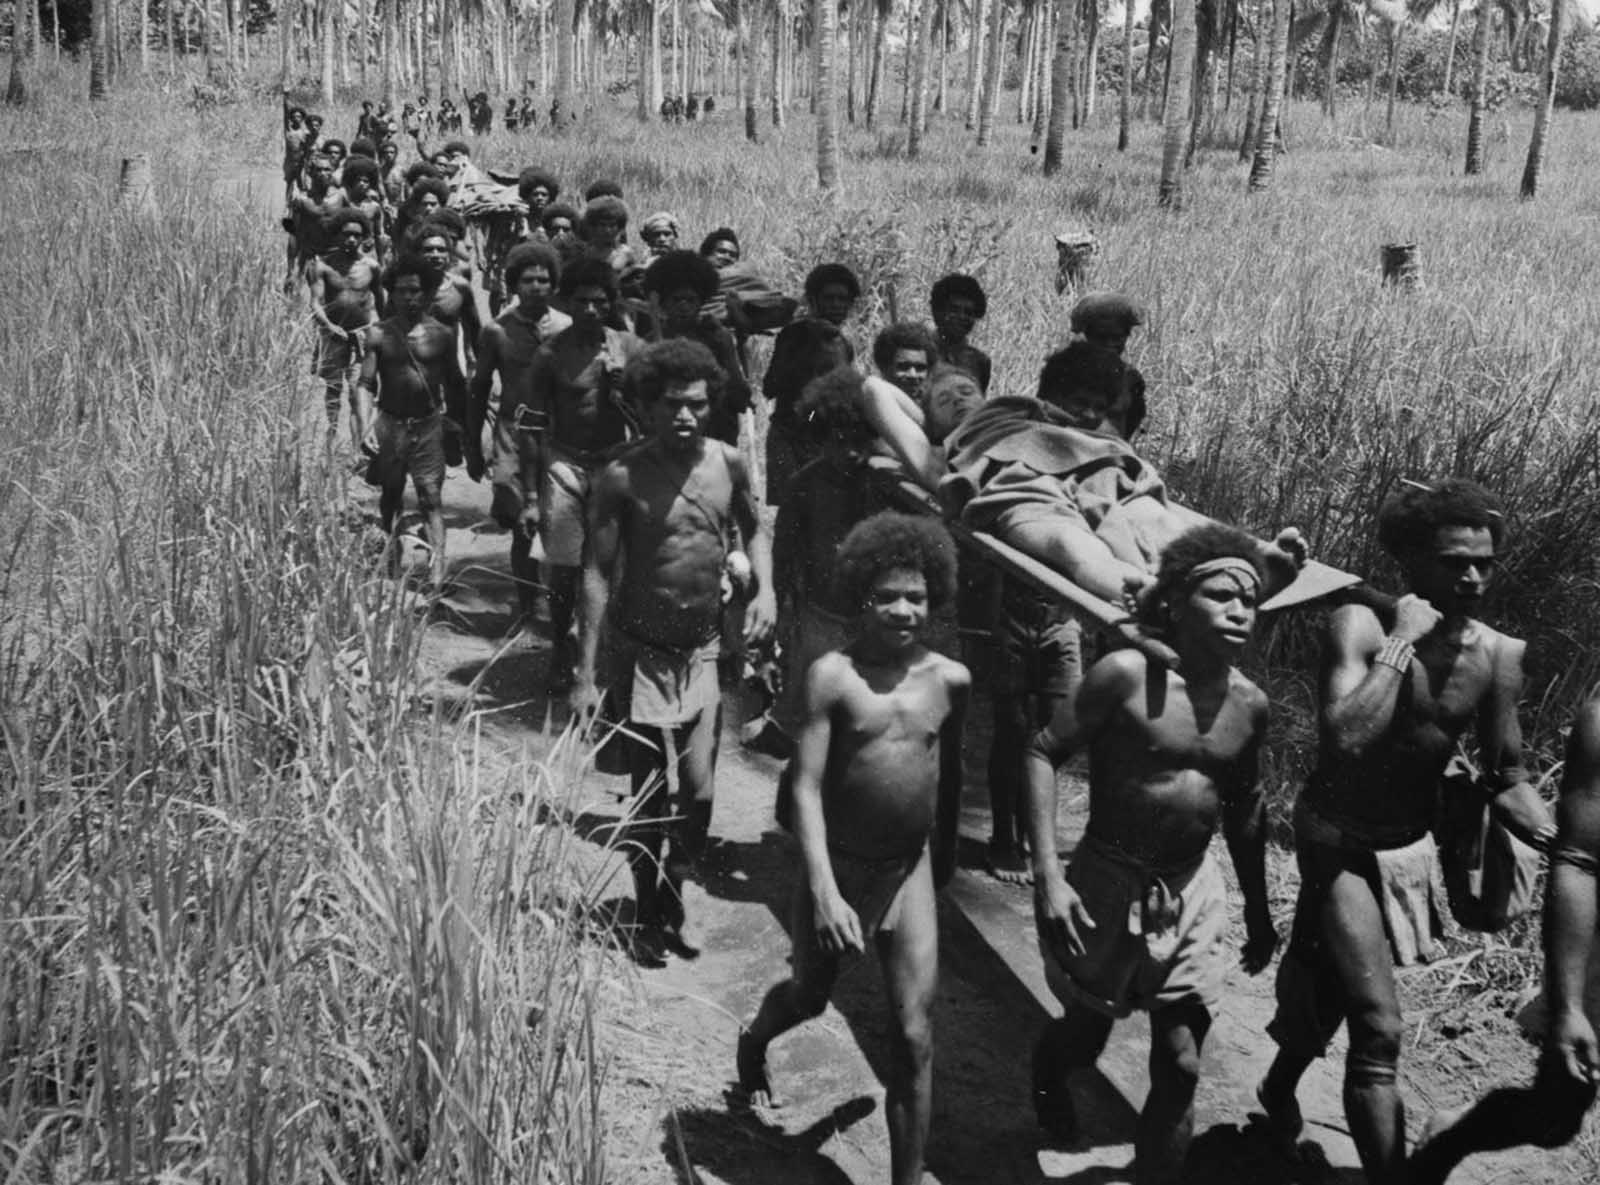 Stretcher bearers carry wounded soldiers to a dressing station near Buna.